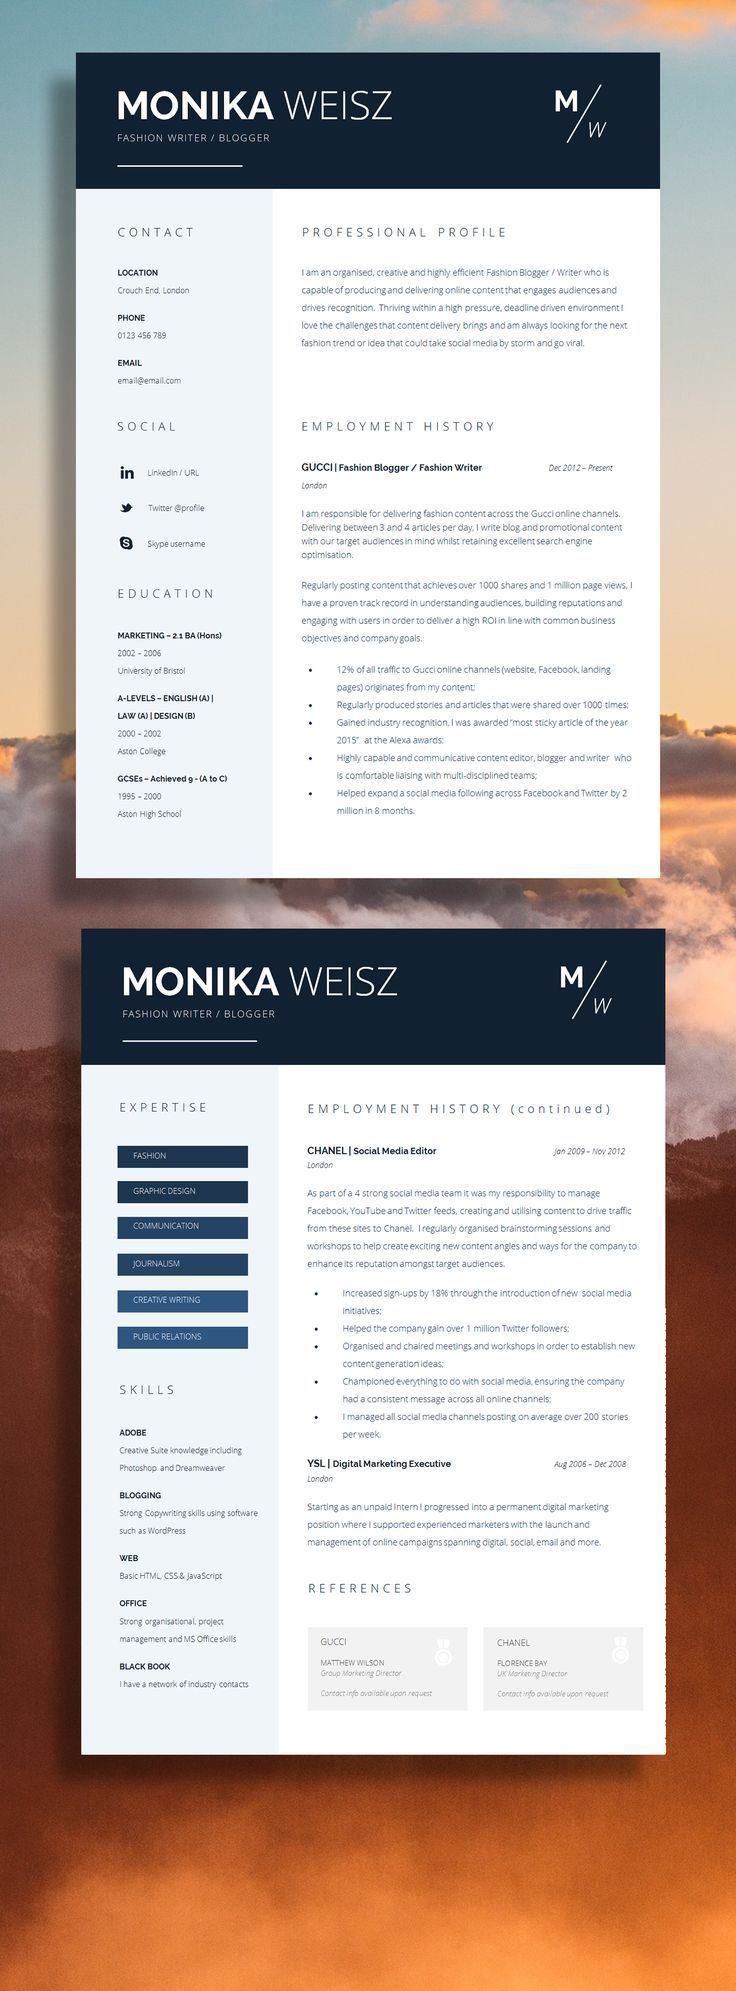 How To Make A Resume Stand Out Modern Resume Template  Professional Resume Template  Modern Cv .